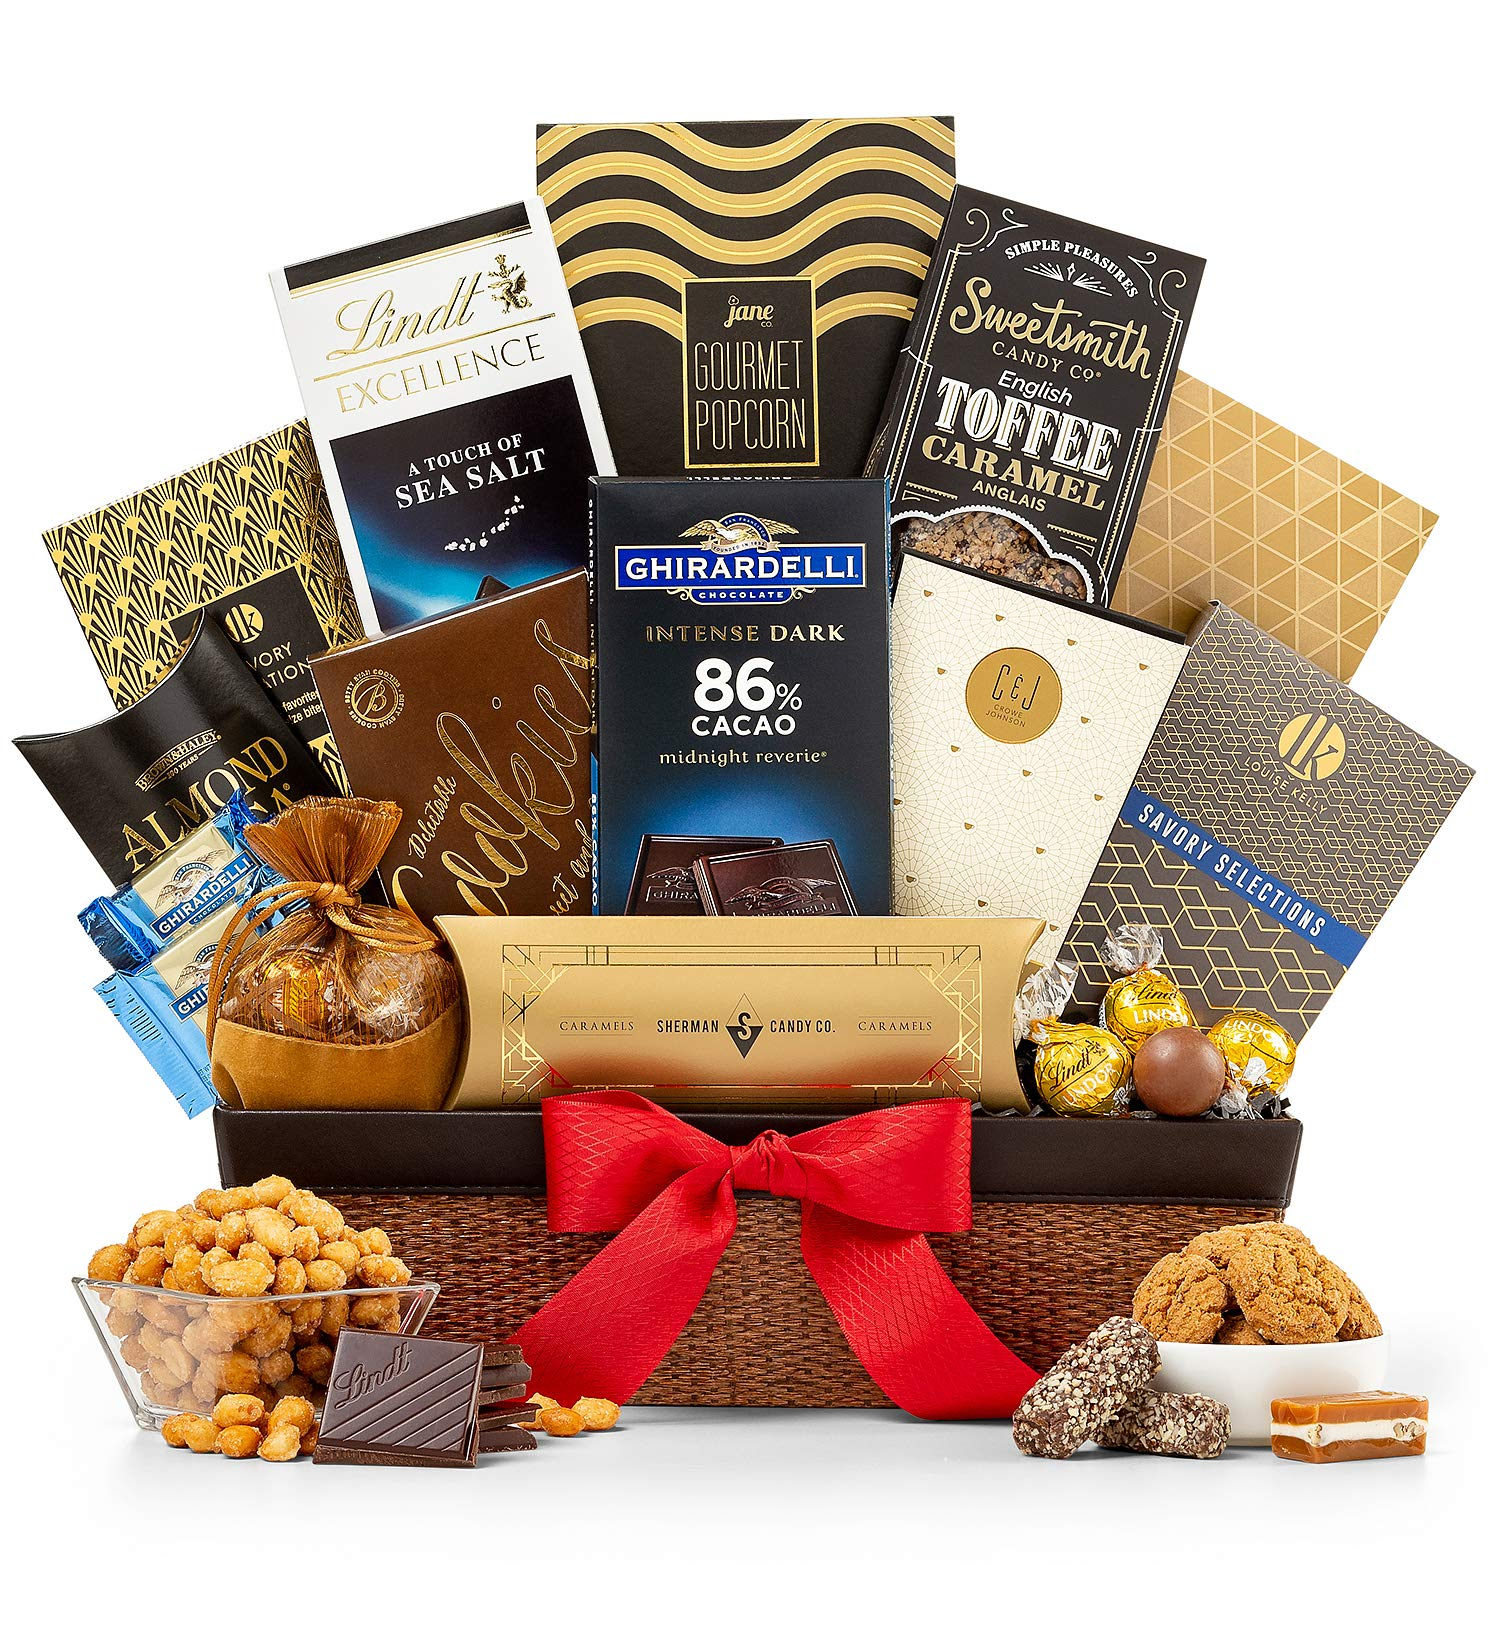 GiftTree Encore Gourmet Gift Basket | Ghirardelli & Lindt Chocolates, English Toffee Caramels, White Cheddar Popcorn, Nuts & More | Perfect Present for Birthdays, Thank You, Business and Holidays by GiftTree